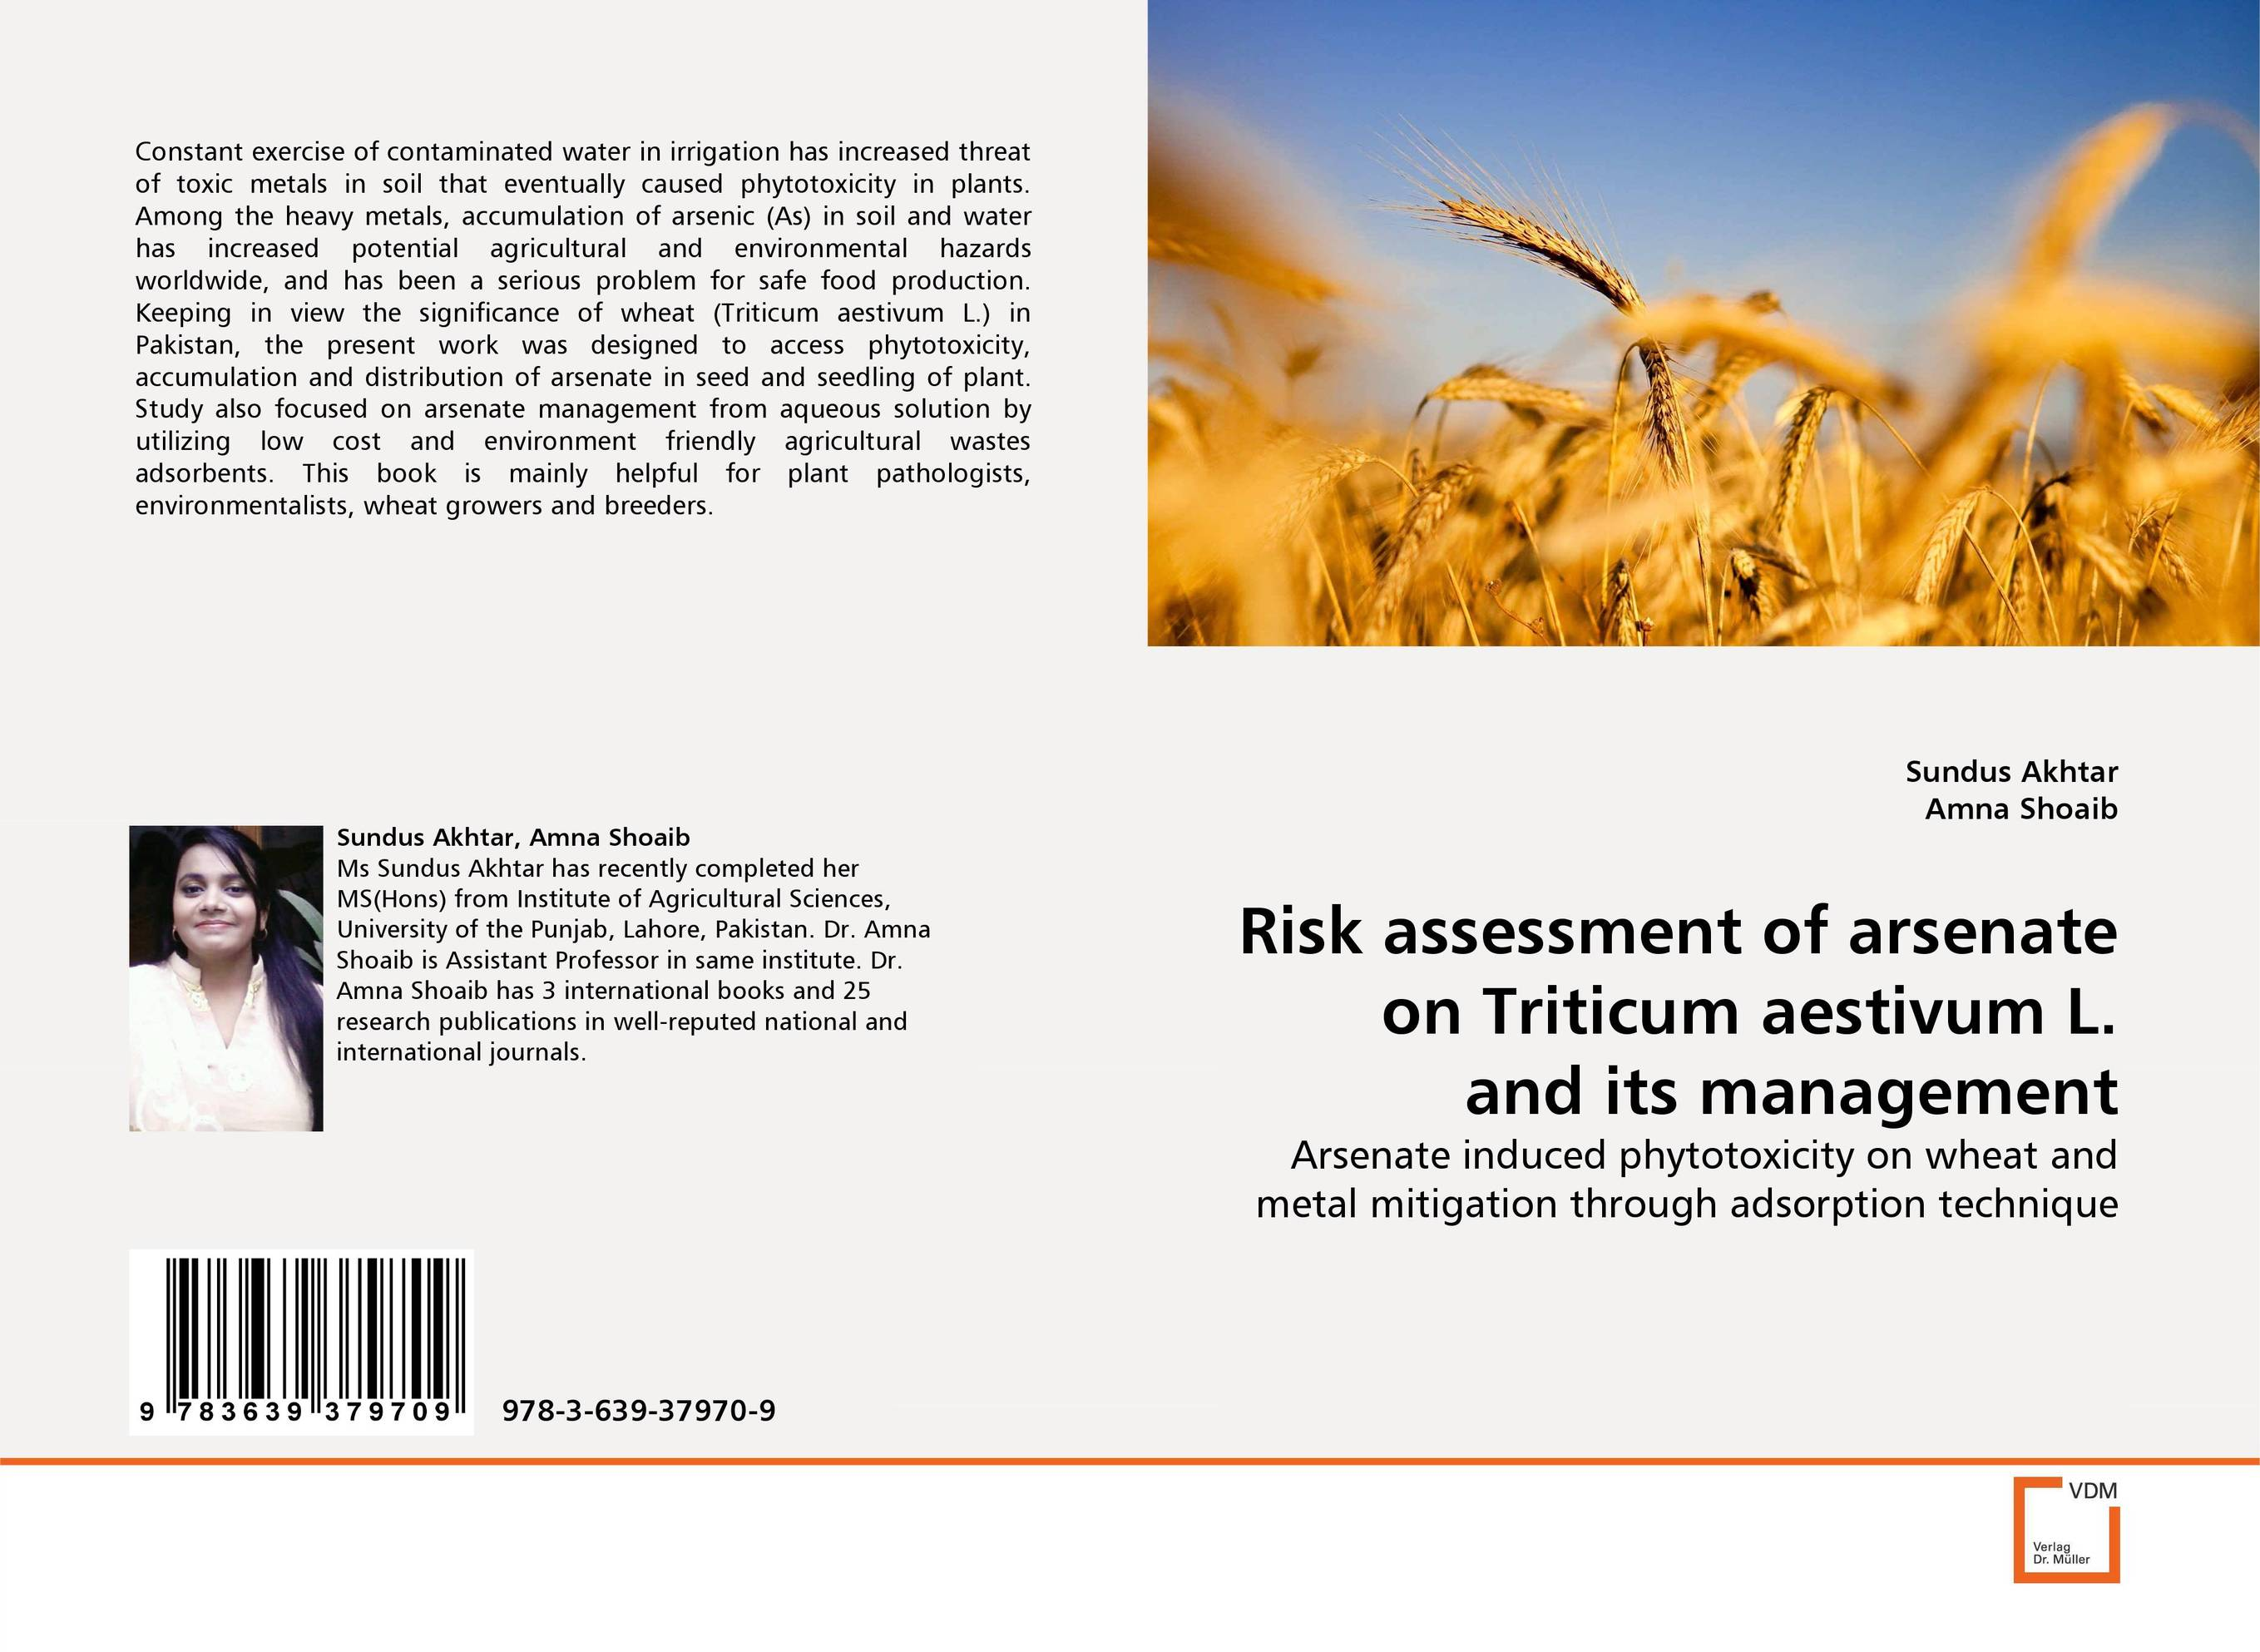 Risk assessment of arsenate on Triticum aestivum L. and its management practical risk assessment for project management